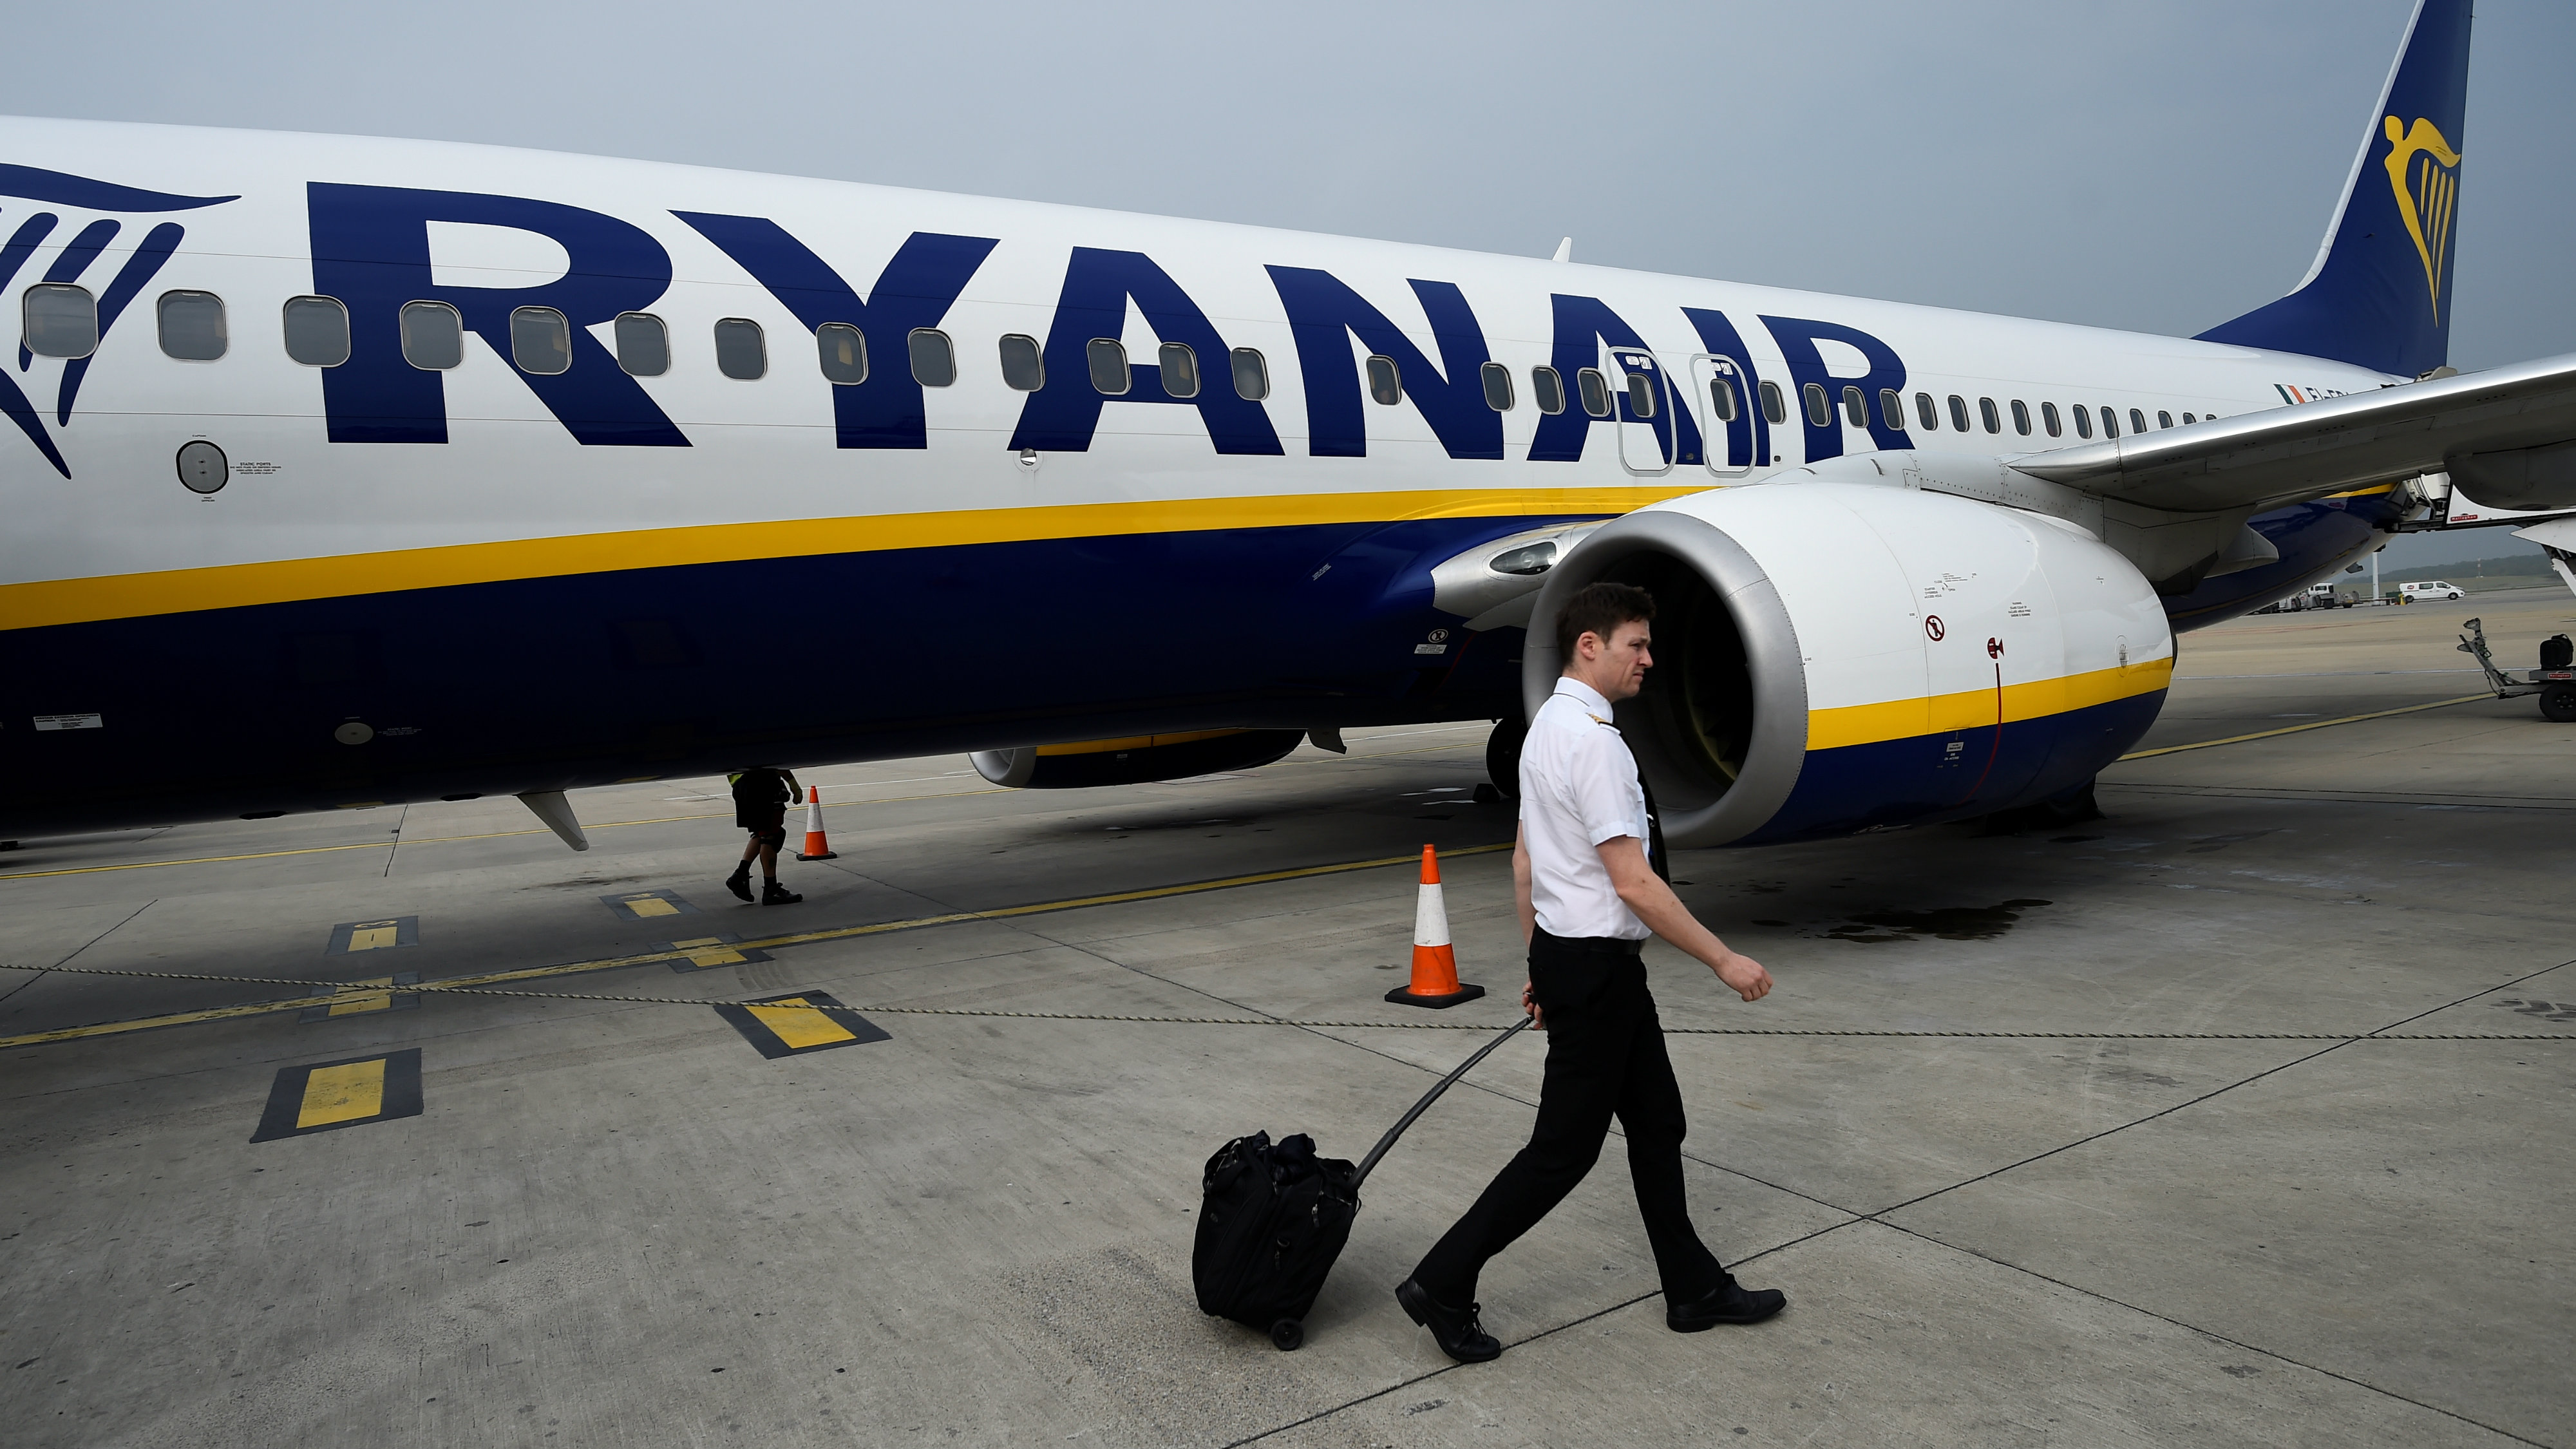 Forum on this topic: How Ryanair's Latest Scandal Could Affect You , how-ryanairs-latest-scandal-could-affect-you/